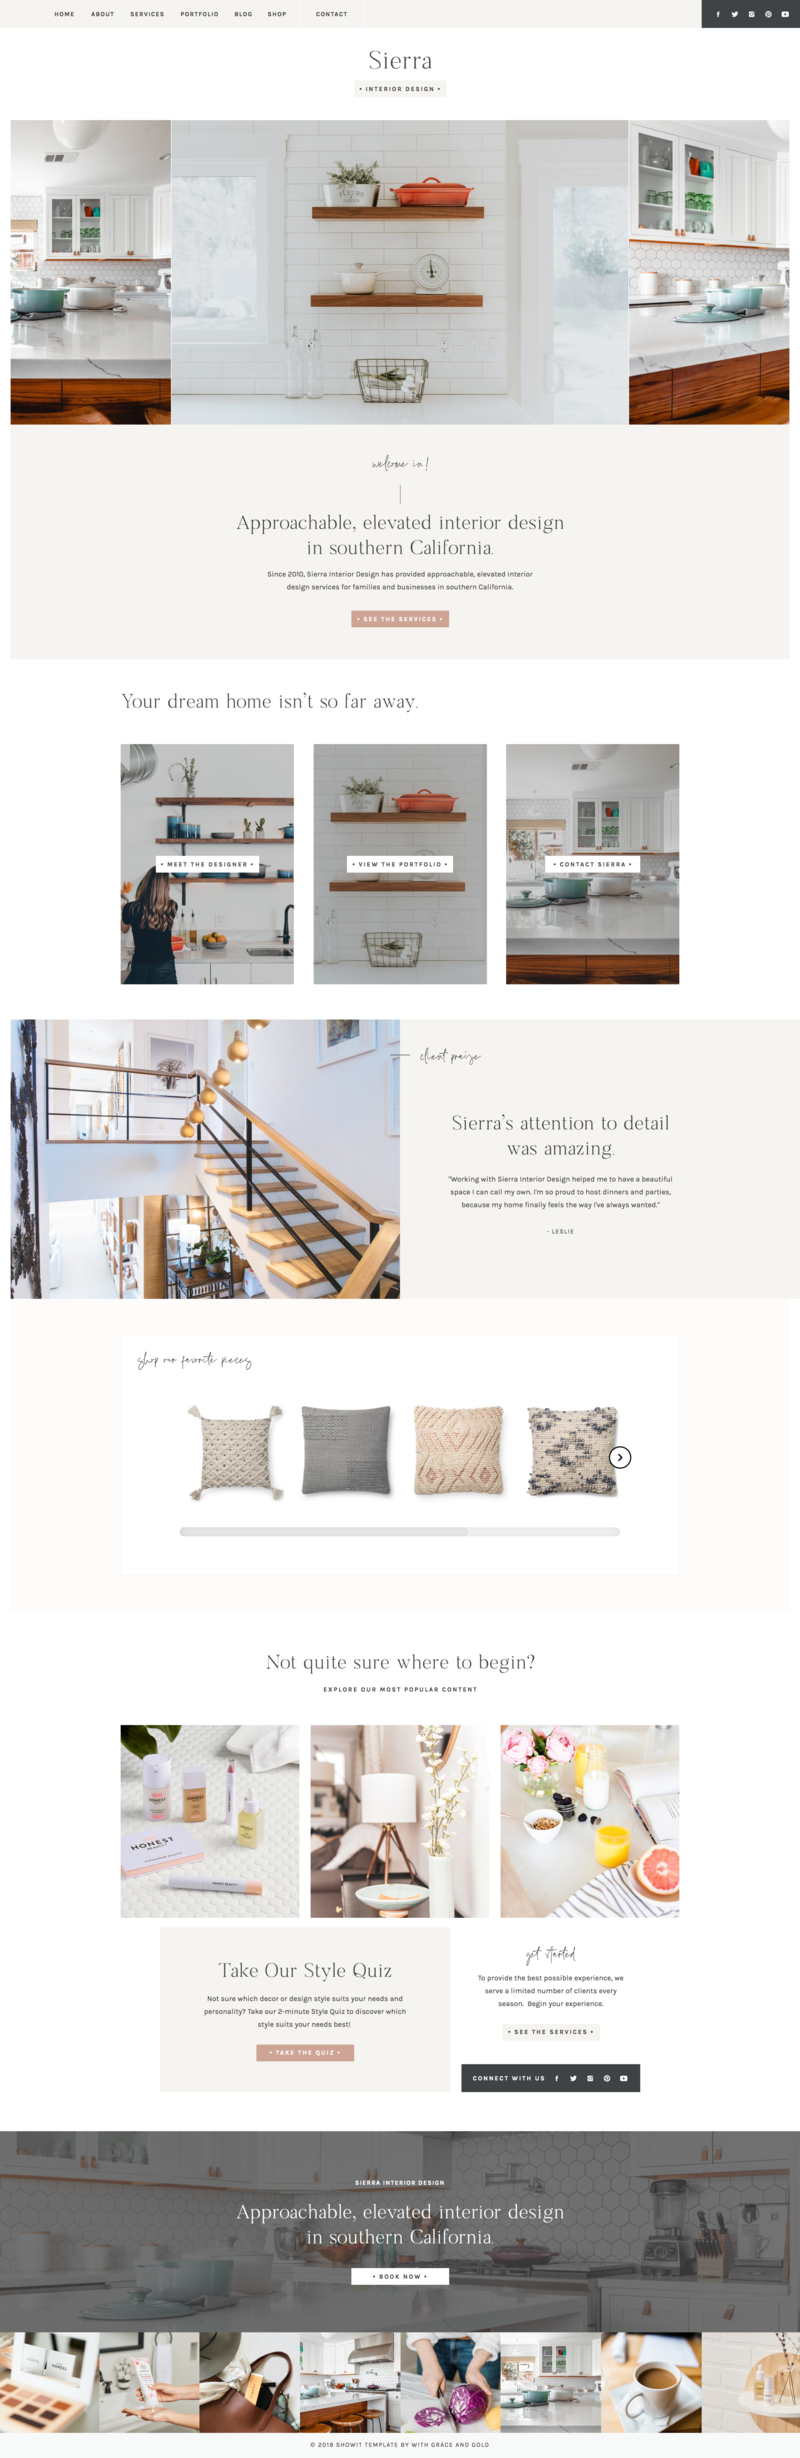 With Grace and Gold - Best Showit Design, Designs, Designer, Designers, Theme, Themes, Template, Templates for Photographers and Creative Small Business Owners